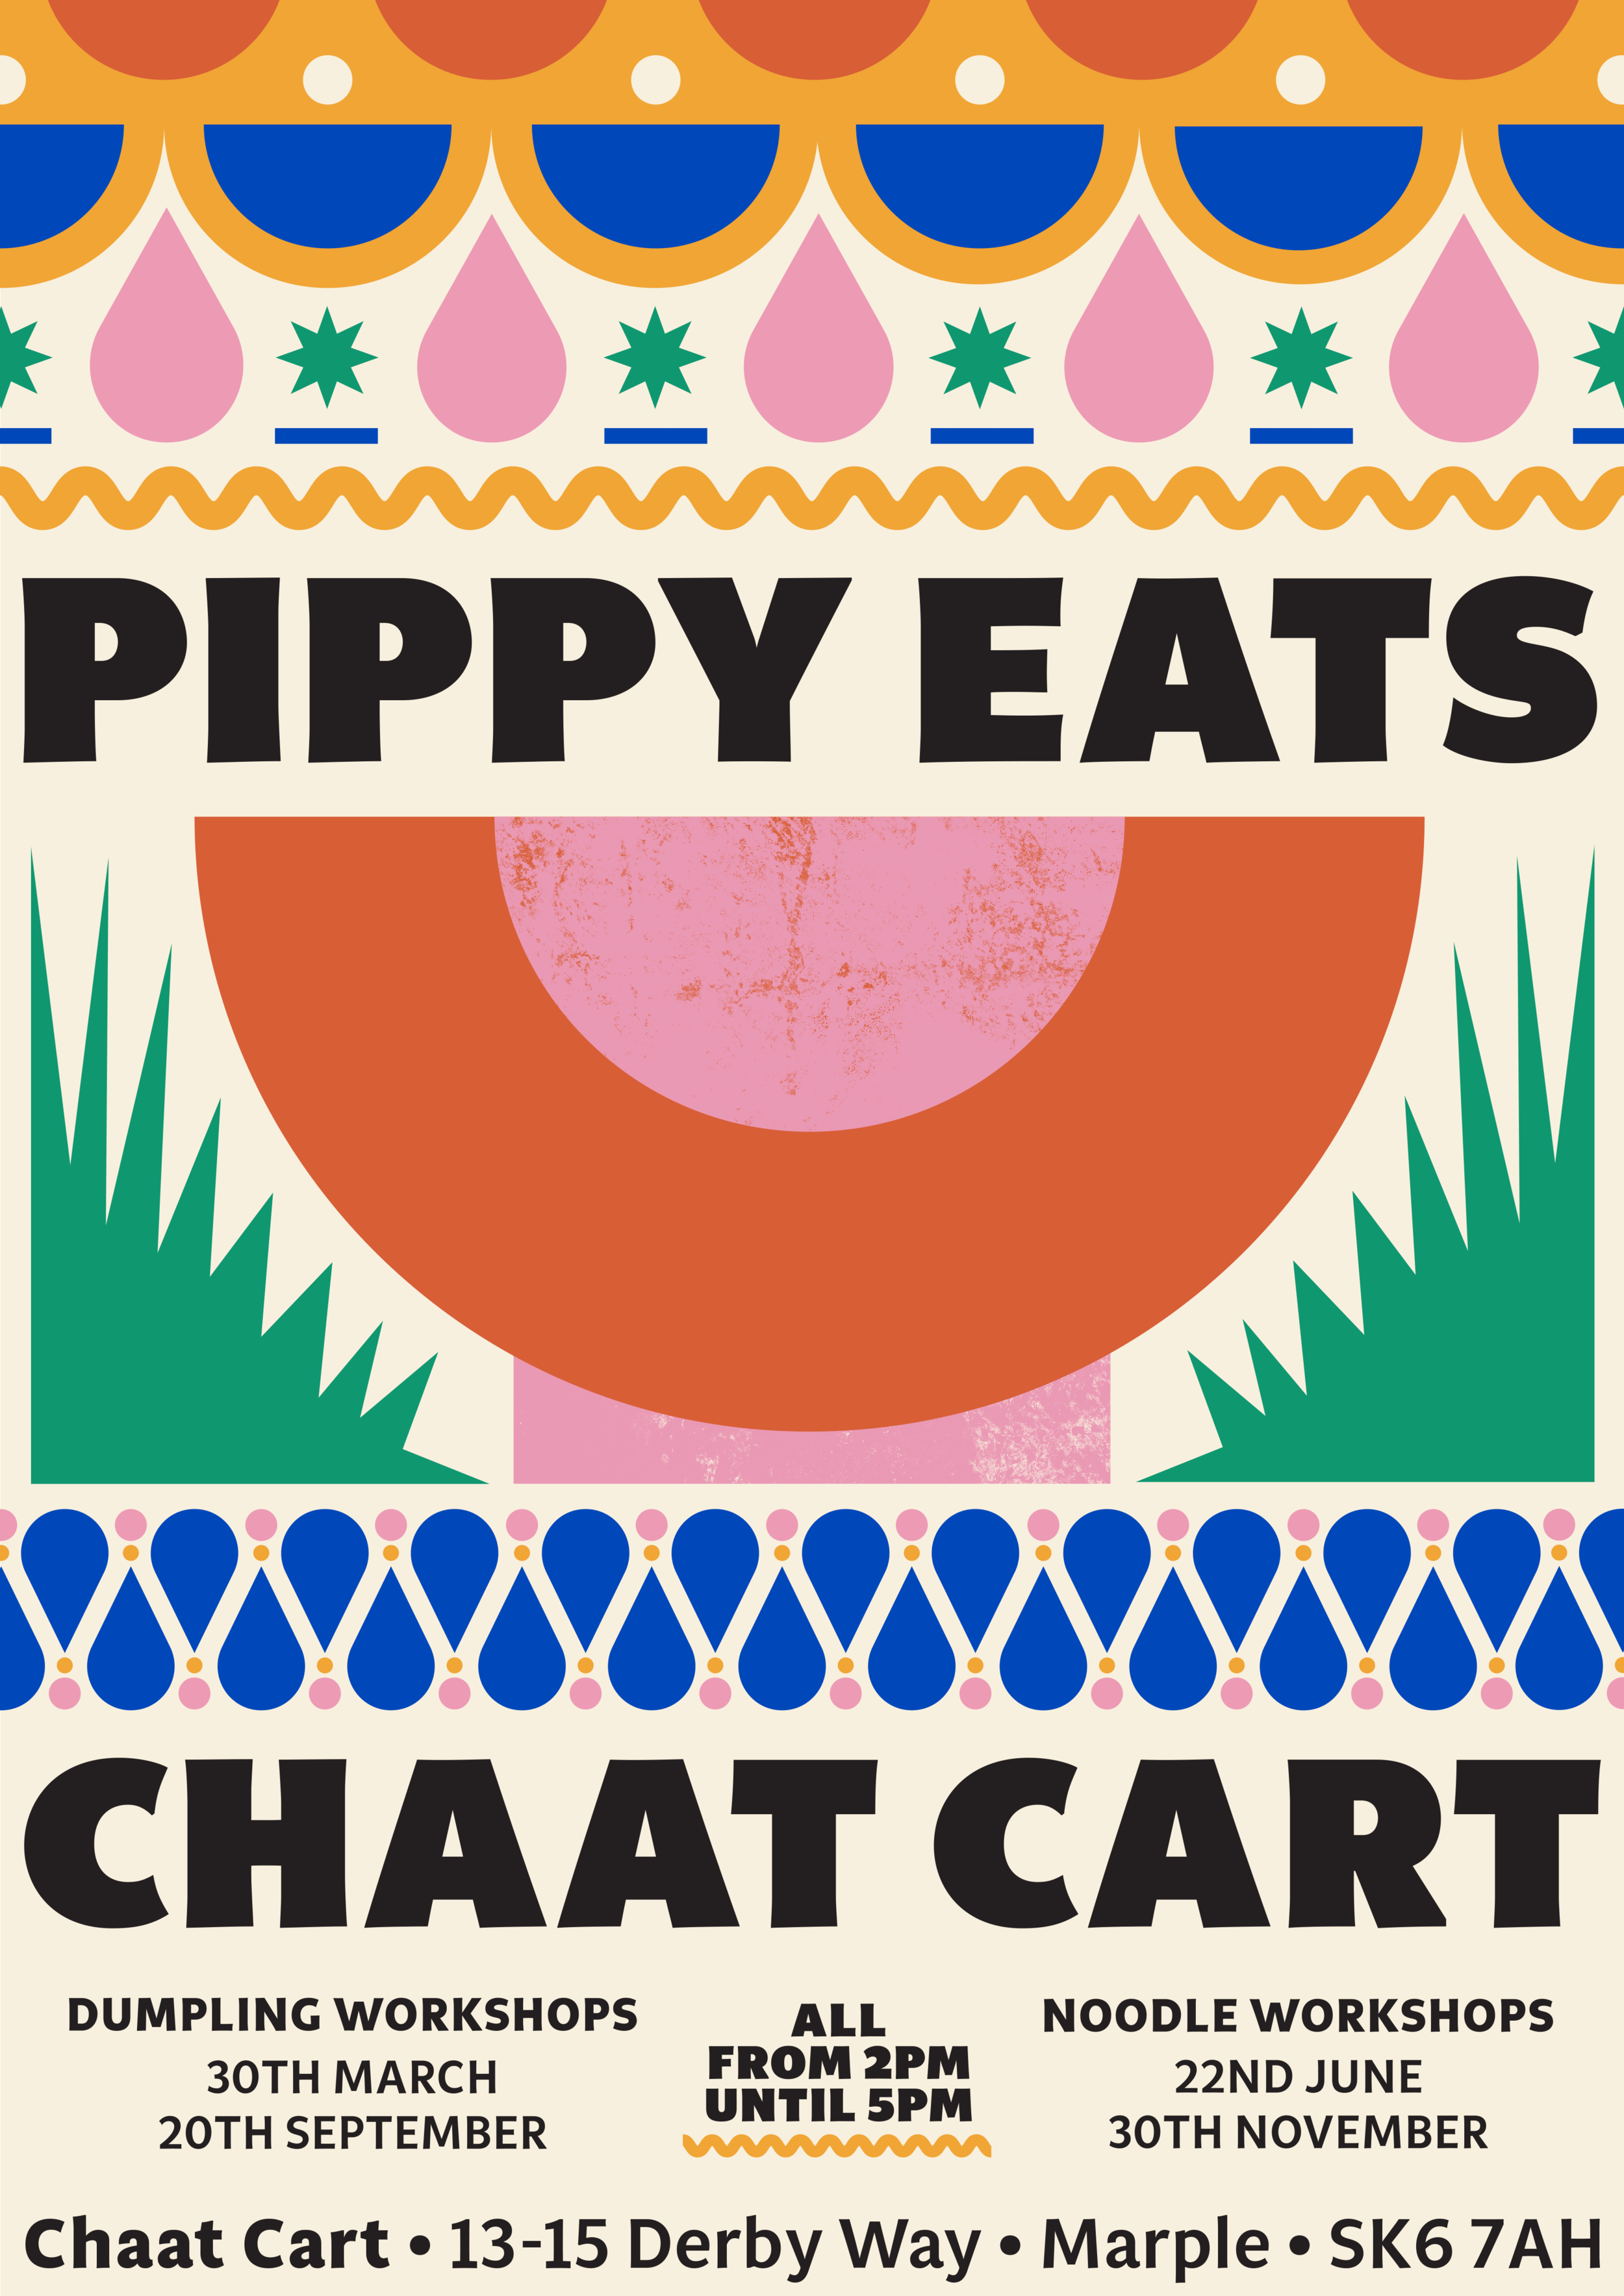 Pippy Eats x Chaat Cart - Taking her infamous Dumpling workshop on tour, this March Pippy Eats will be taking to Chaat Cart in Marple as part of long-term foodie collaboration.The hugely popular Dumpling Workshop takes place on the 30th March and teaches guests how to make her favourite types of dumplings from scratch, from prepping the dough to learning how to cater the filling to your own taste buds and finally pleating the delicious delicacies by hand.Tickets available from Eventbrite